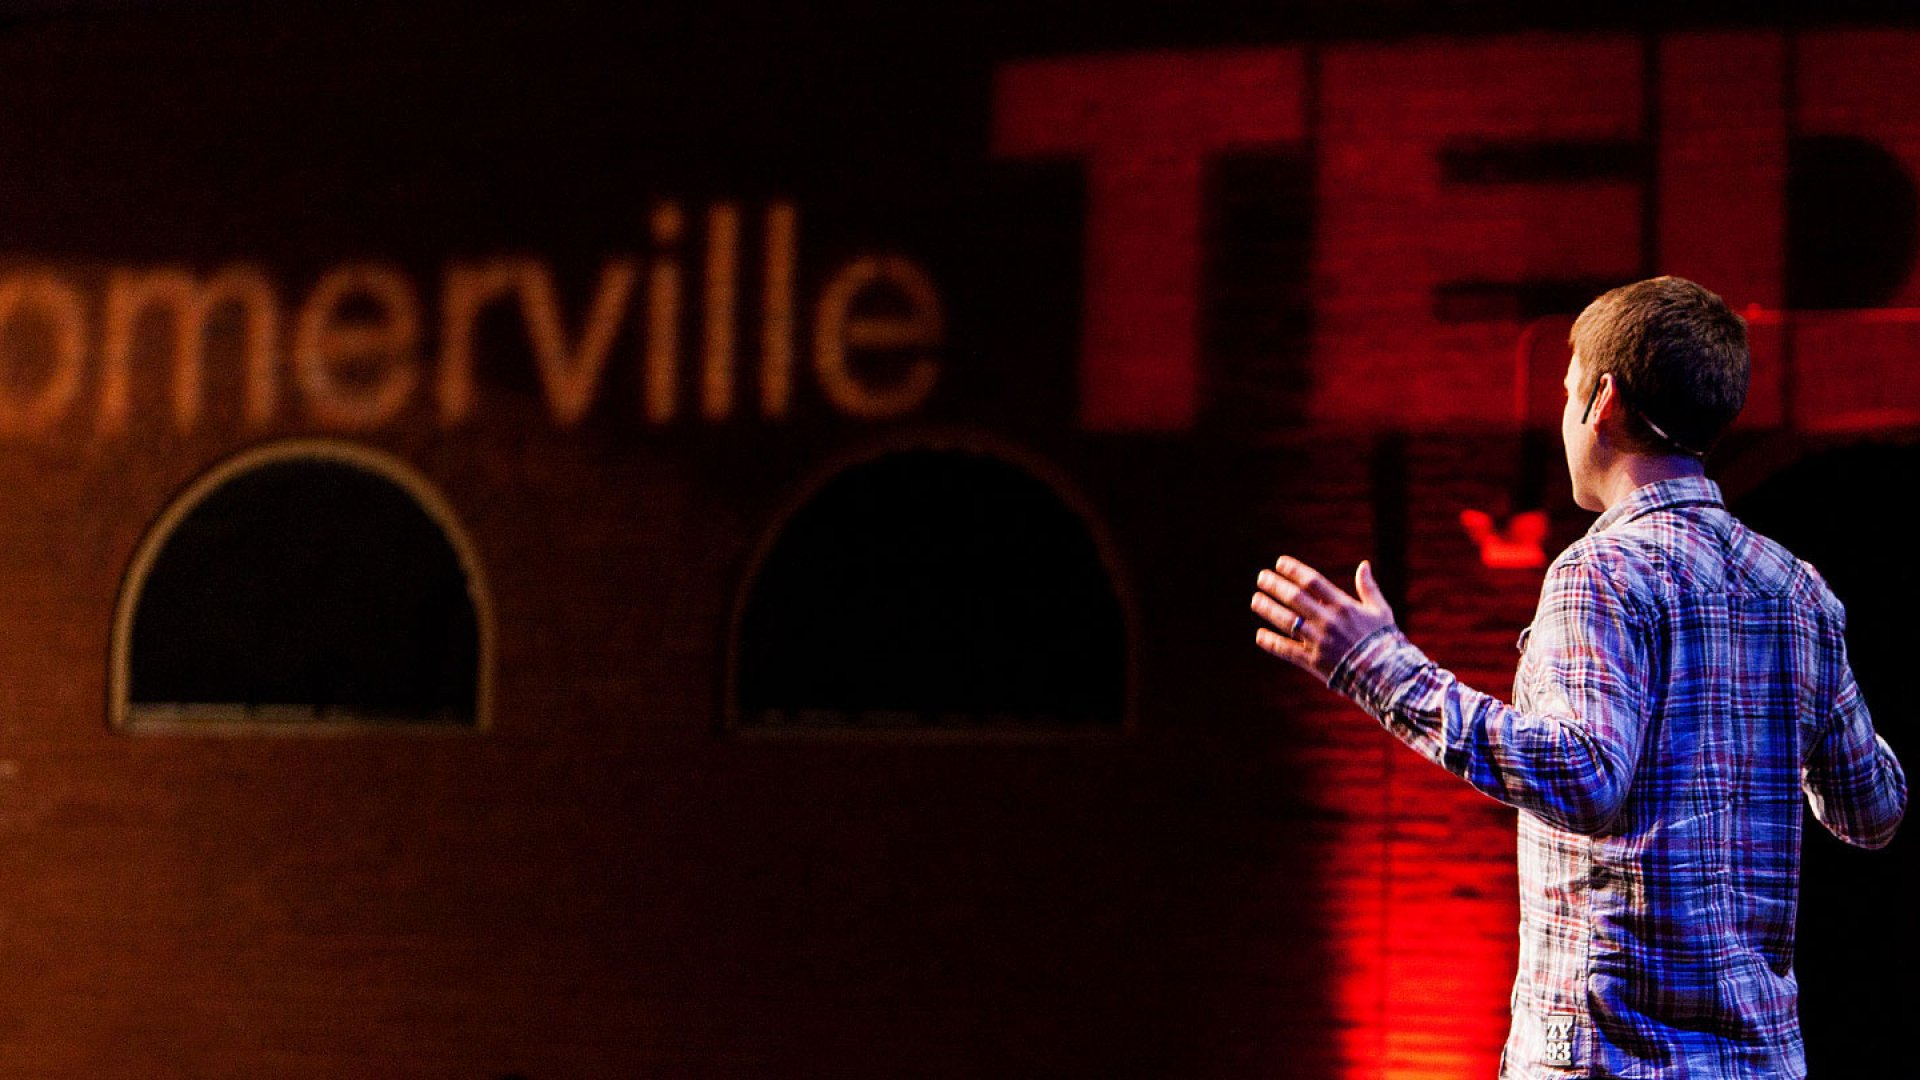 5 Secrets of Public Speaking From the Best TED Presenters